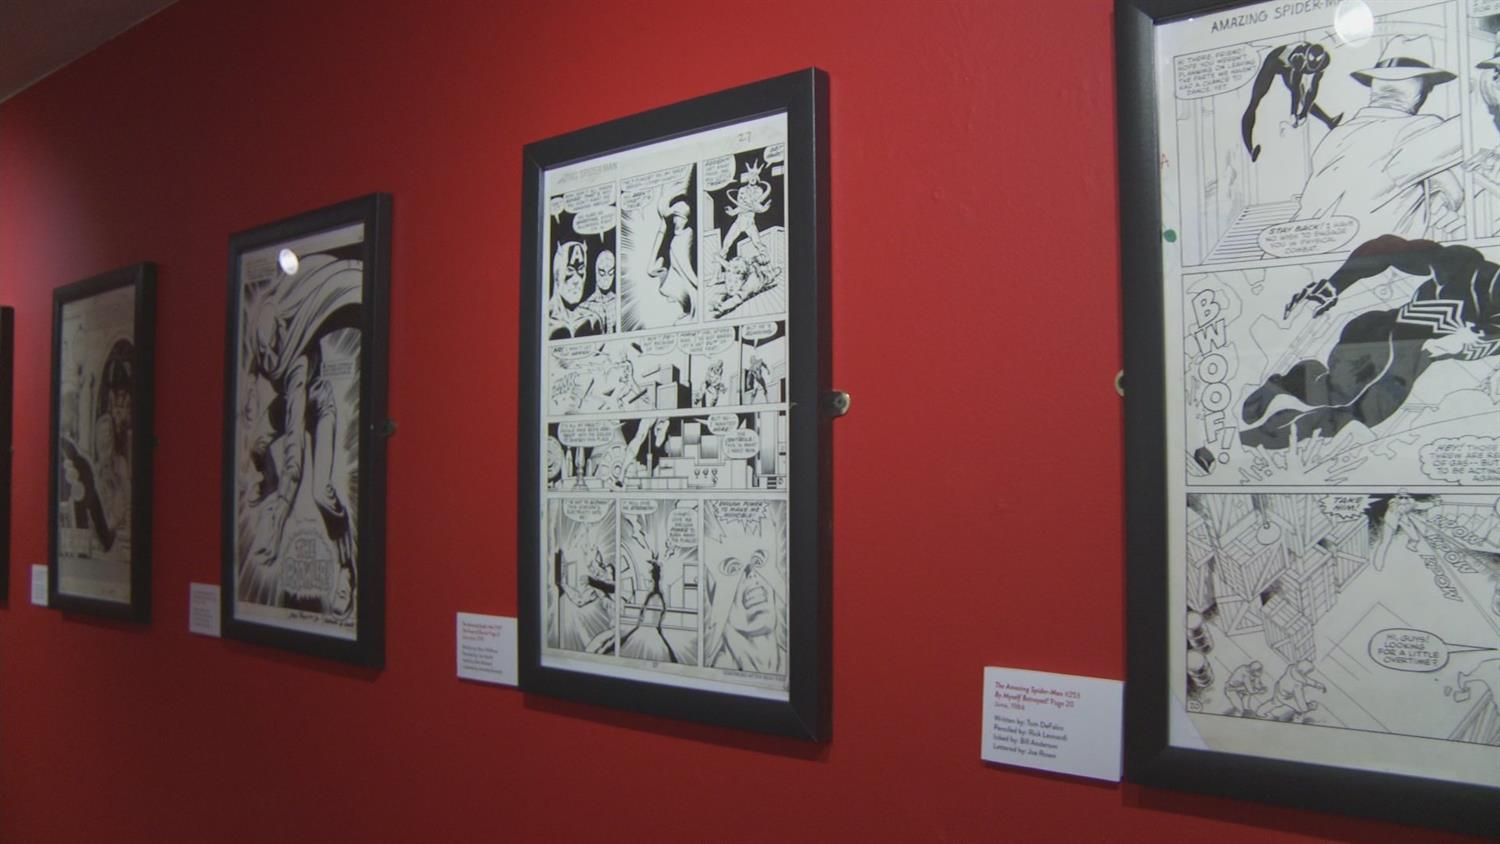 The Art of Spider-Man Exhibit: John Romita Sr. Reflections and More